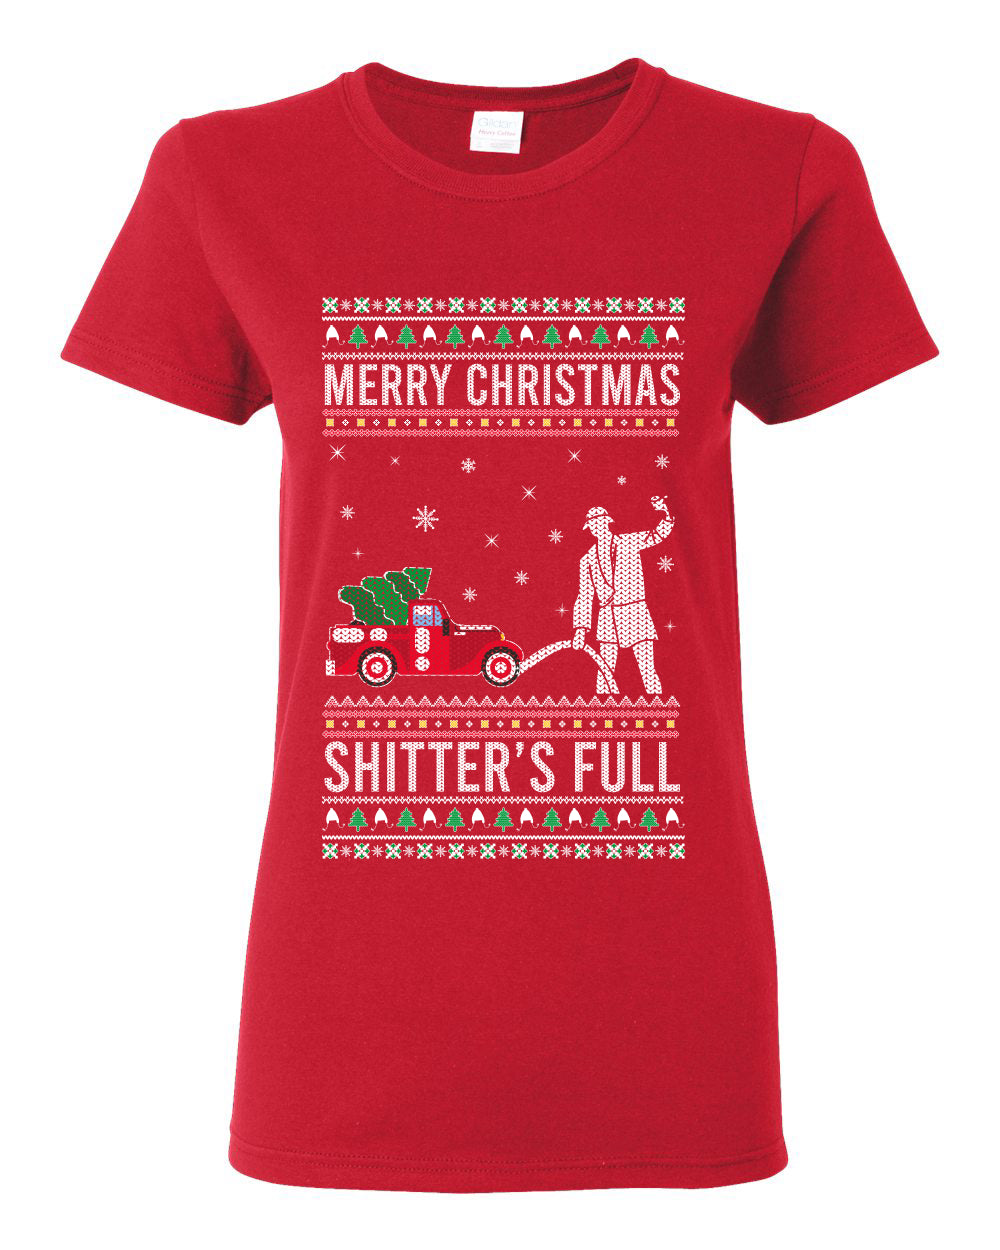 Merry Christmas Shitter's Full Christmas Vacation Ugly Christmas Sweater Womens Graphic T-Shirt